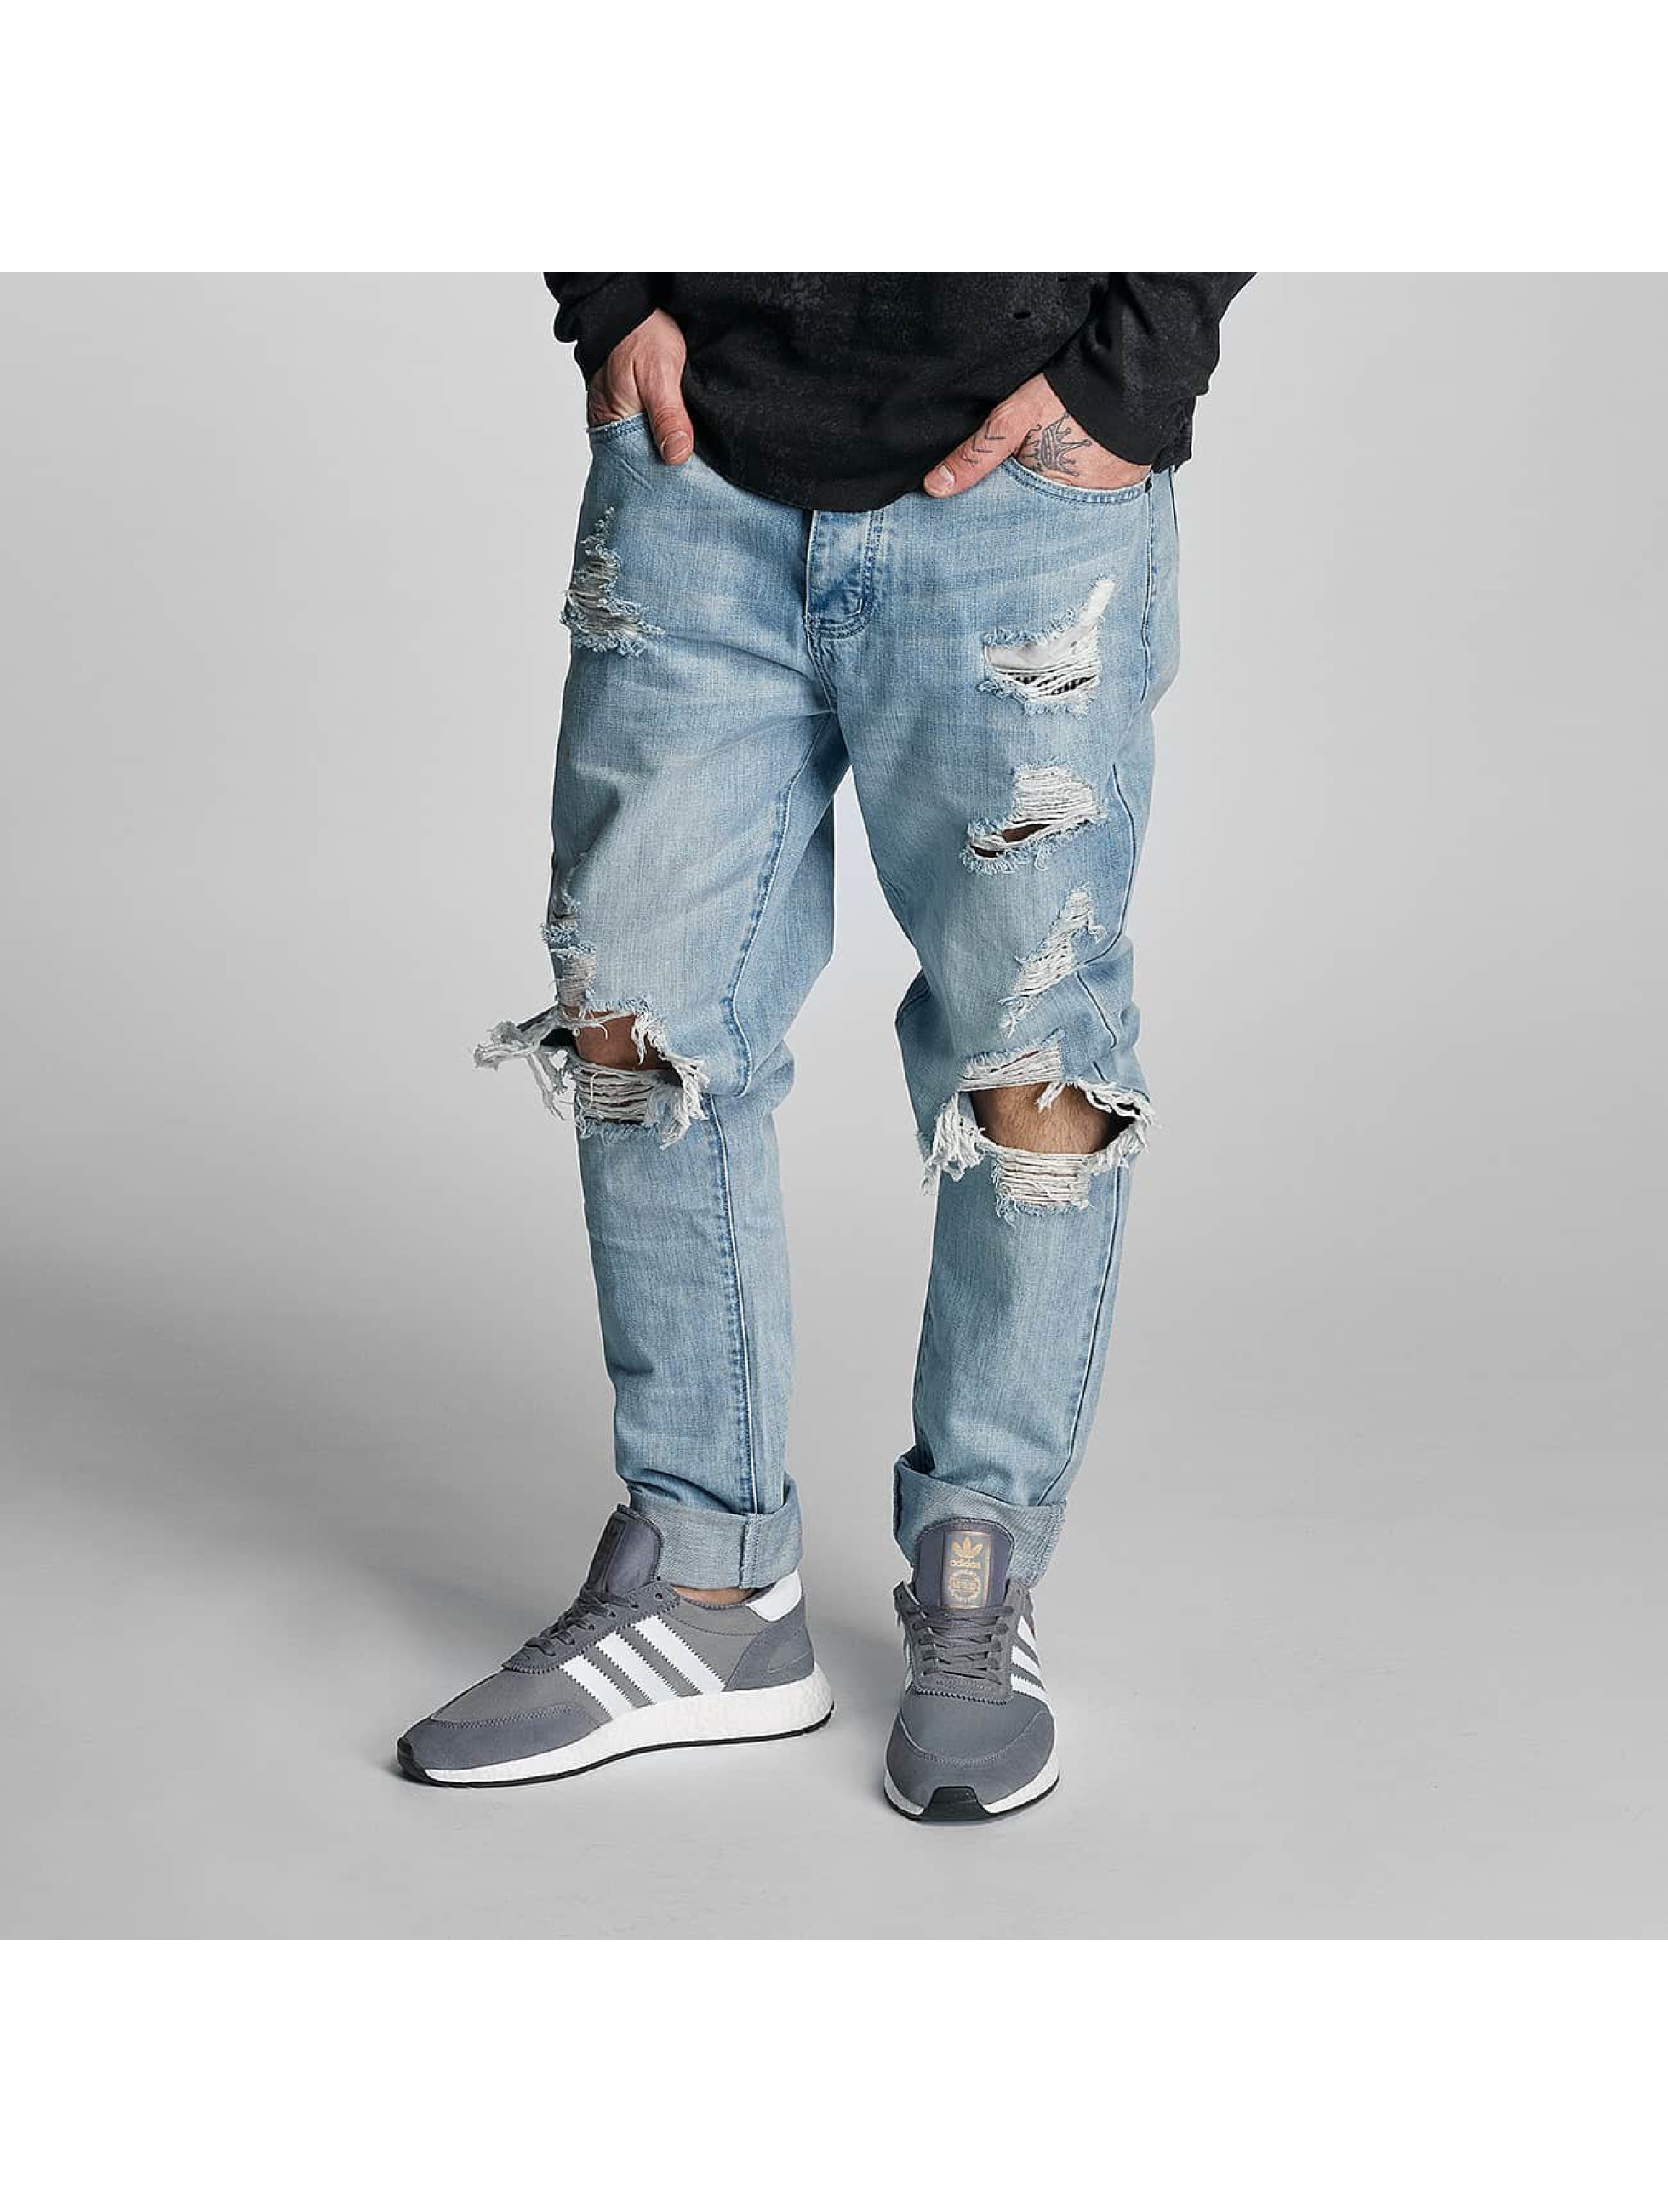 Cayler & Sons Jean / Jeans Straight Fit destroyed en bleu